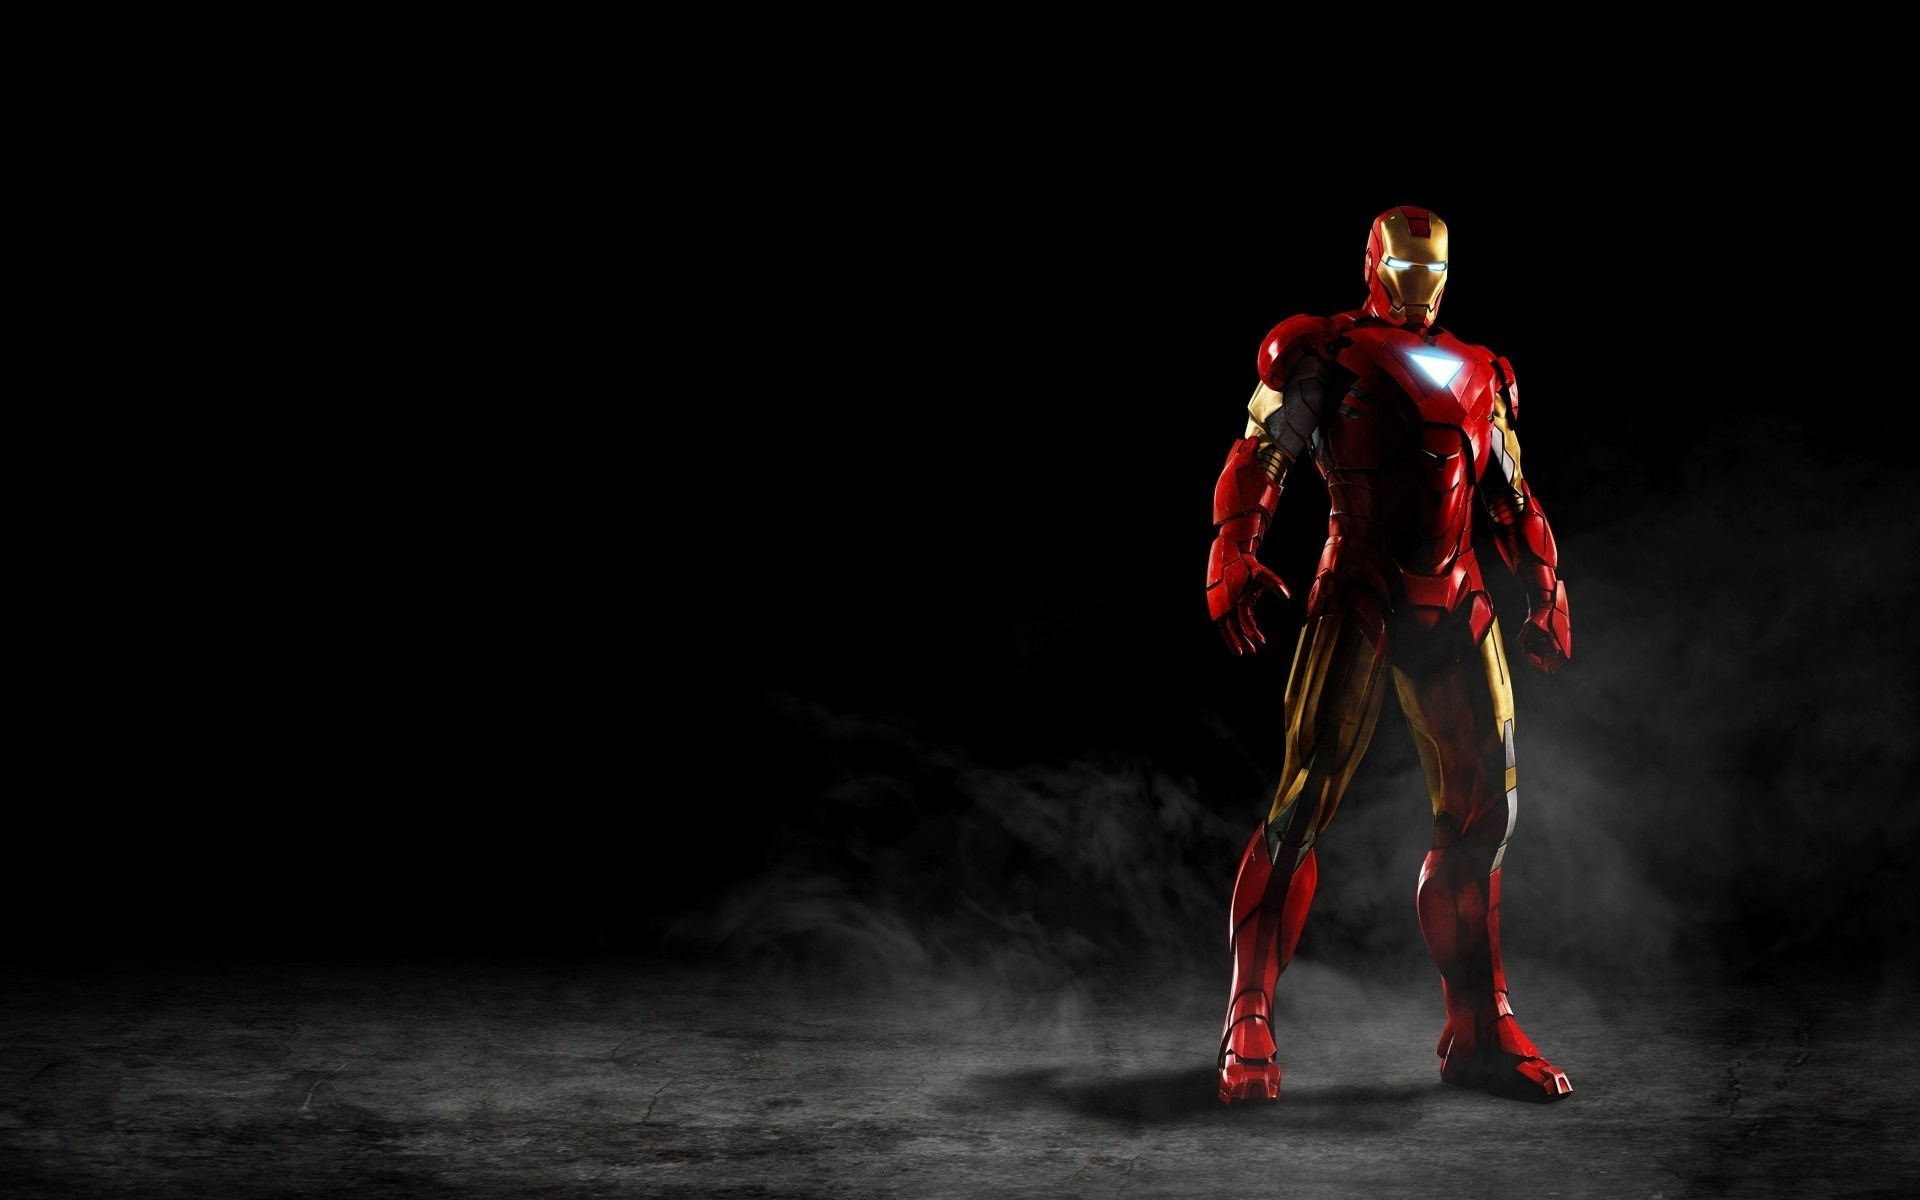 Ironman Hd Wallpapers Top Free Ironman Hd Backgrounds